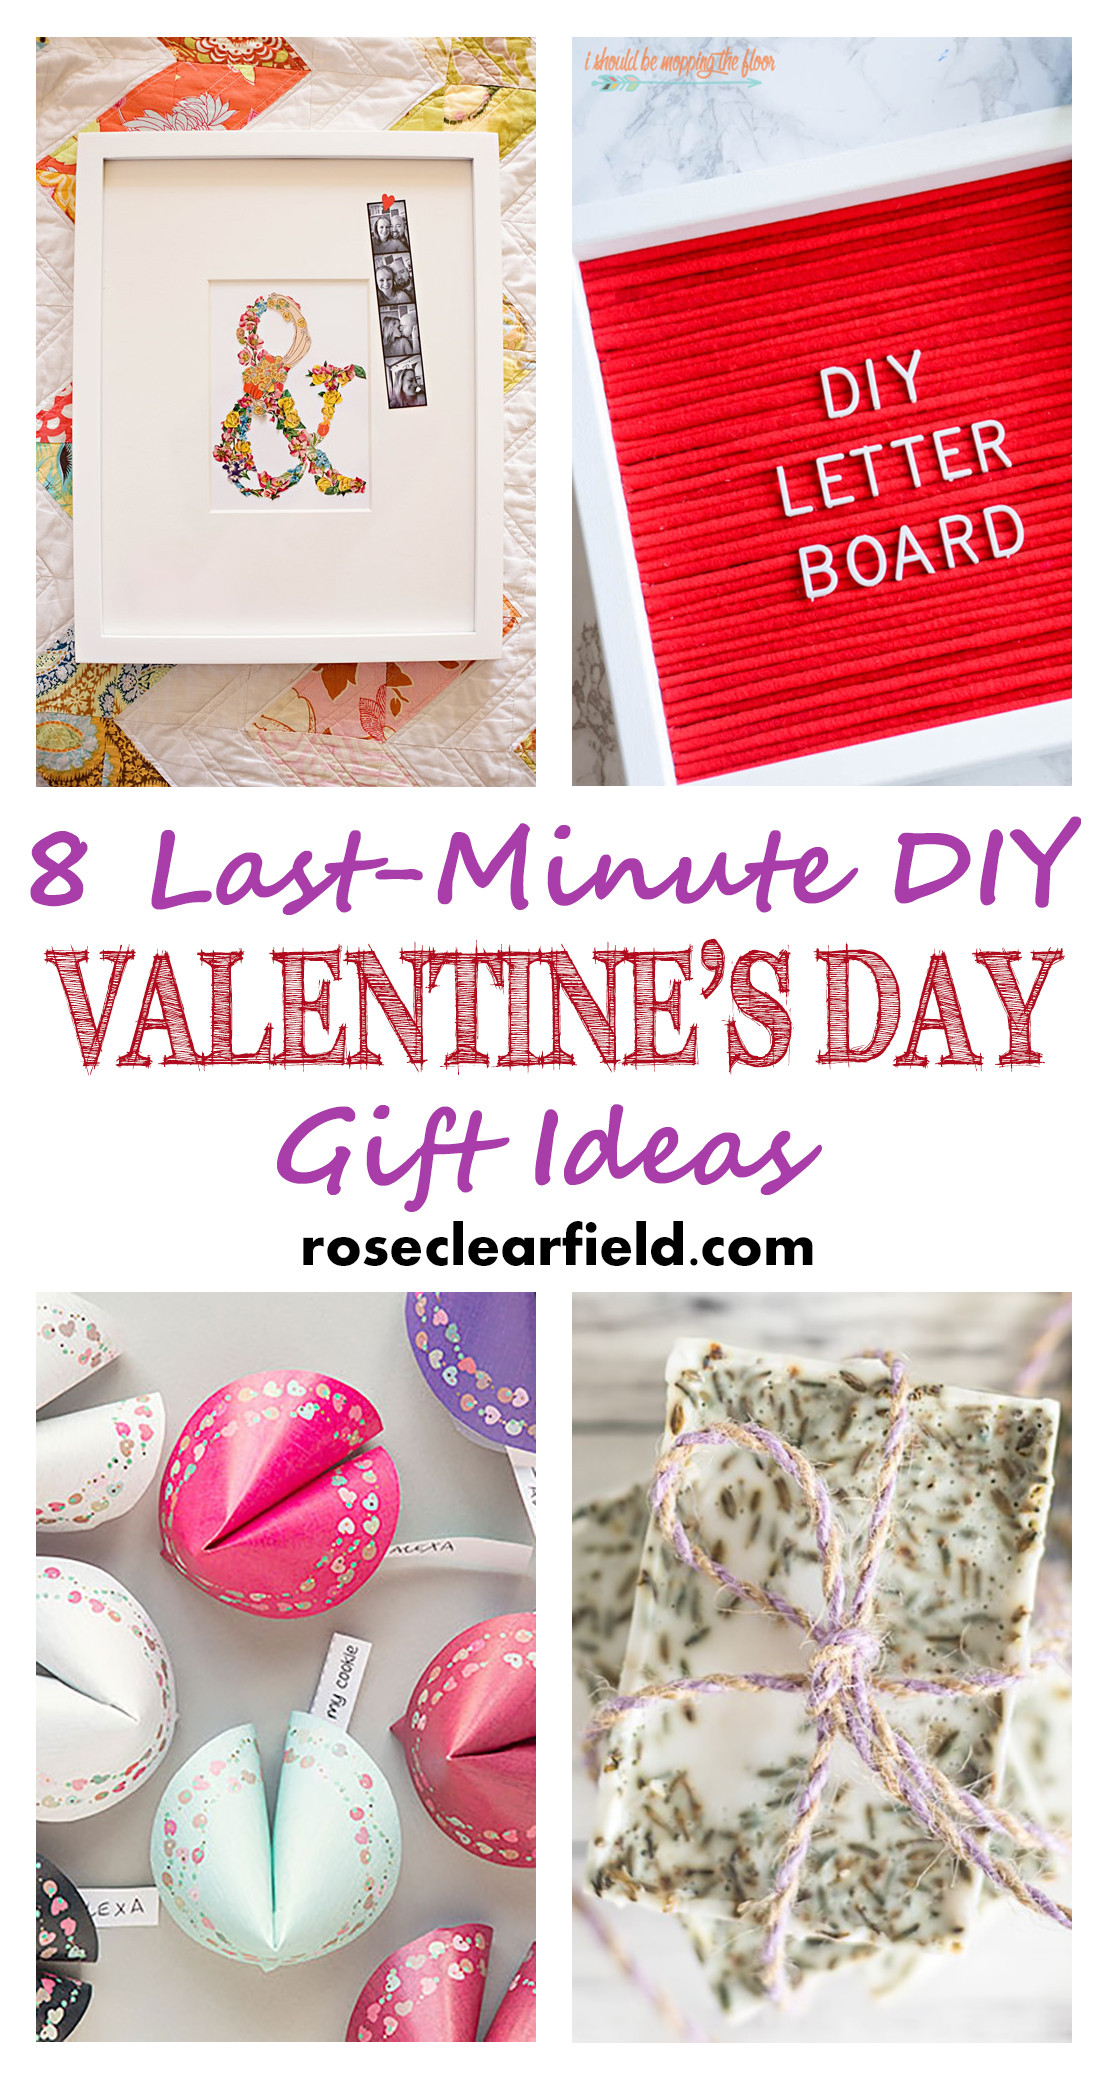 Best ideas about Diy Valentine Day Gift Ideas . Save or Pin Last Minute DIY Valentine s Day Gift Ideas • Rose Clearfield Now.